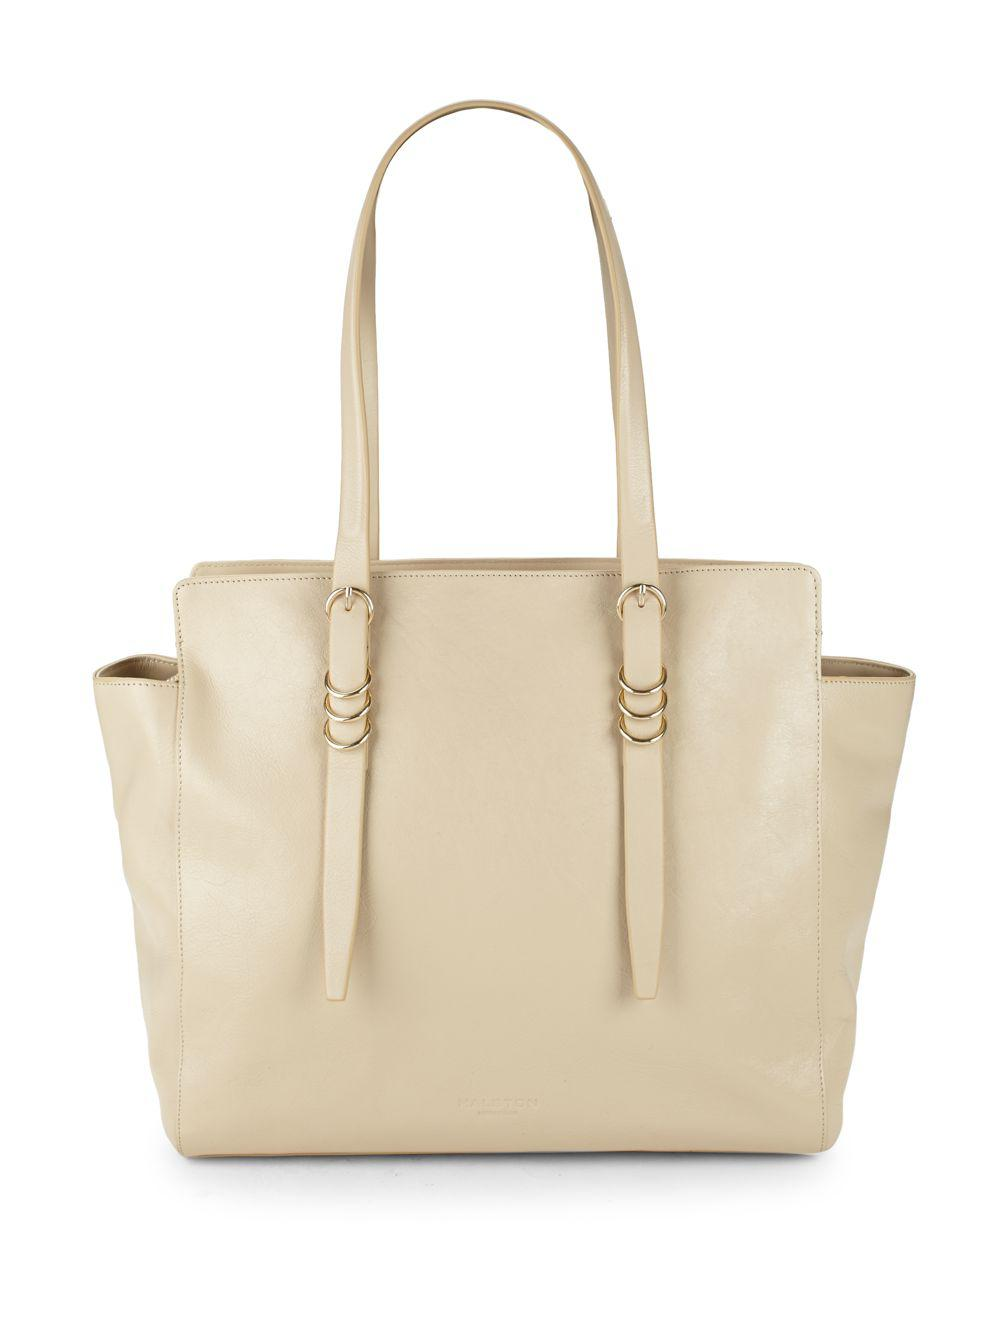 Lyst - Halston Large Leather Zip Tote in Natural - Save 3% 52bf4c830a939